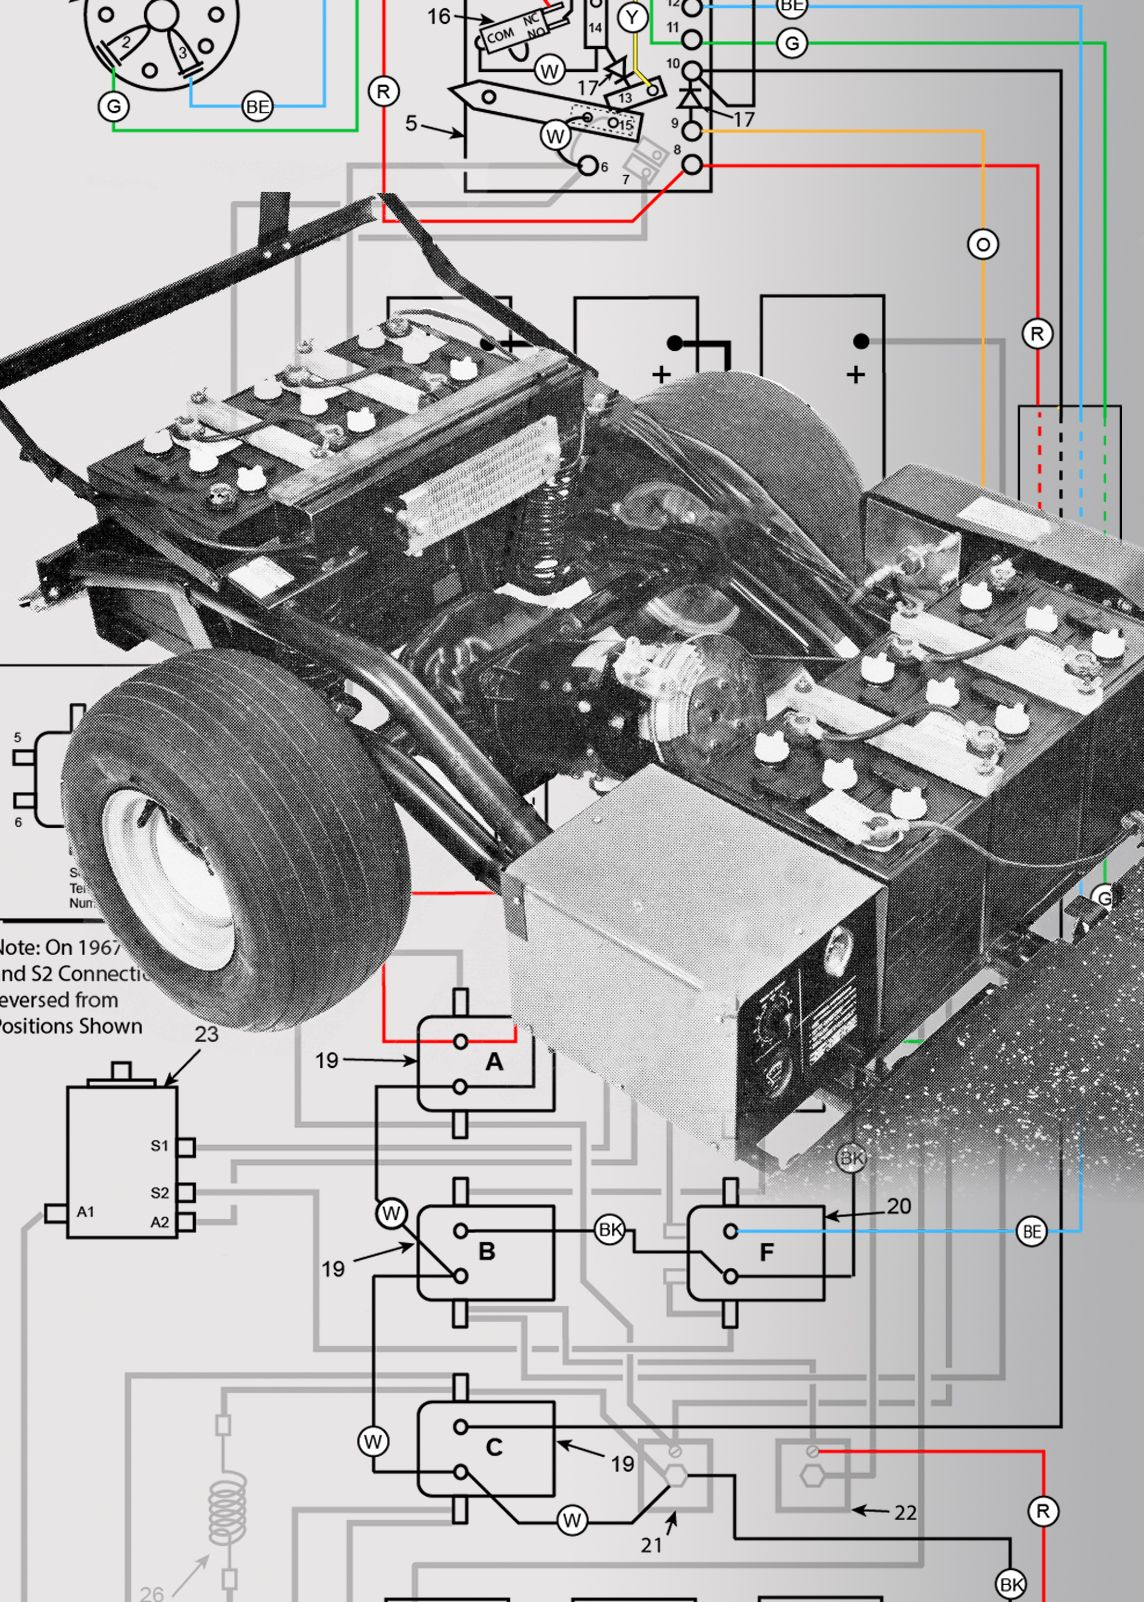 colora coded wiring diagram for 1967 through 1970 harley davidson de model golf carts [ 1144 x 1602 Pixel ]